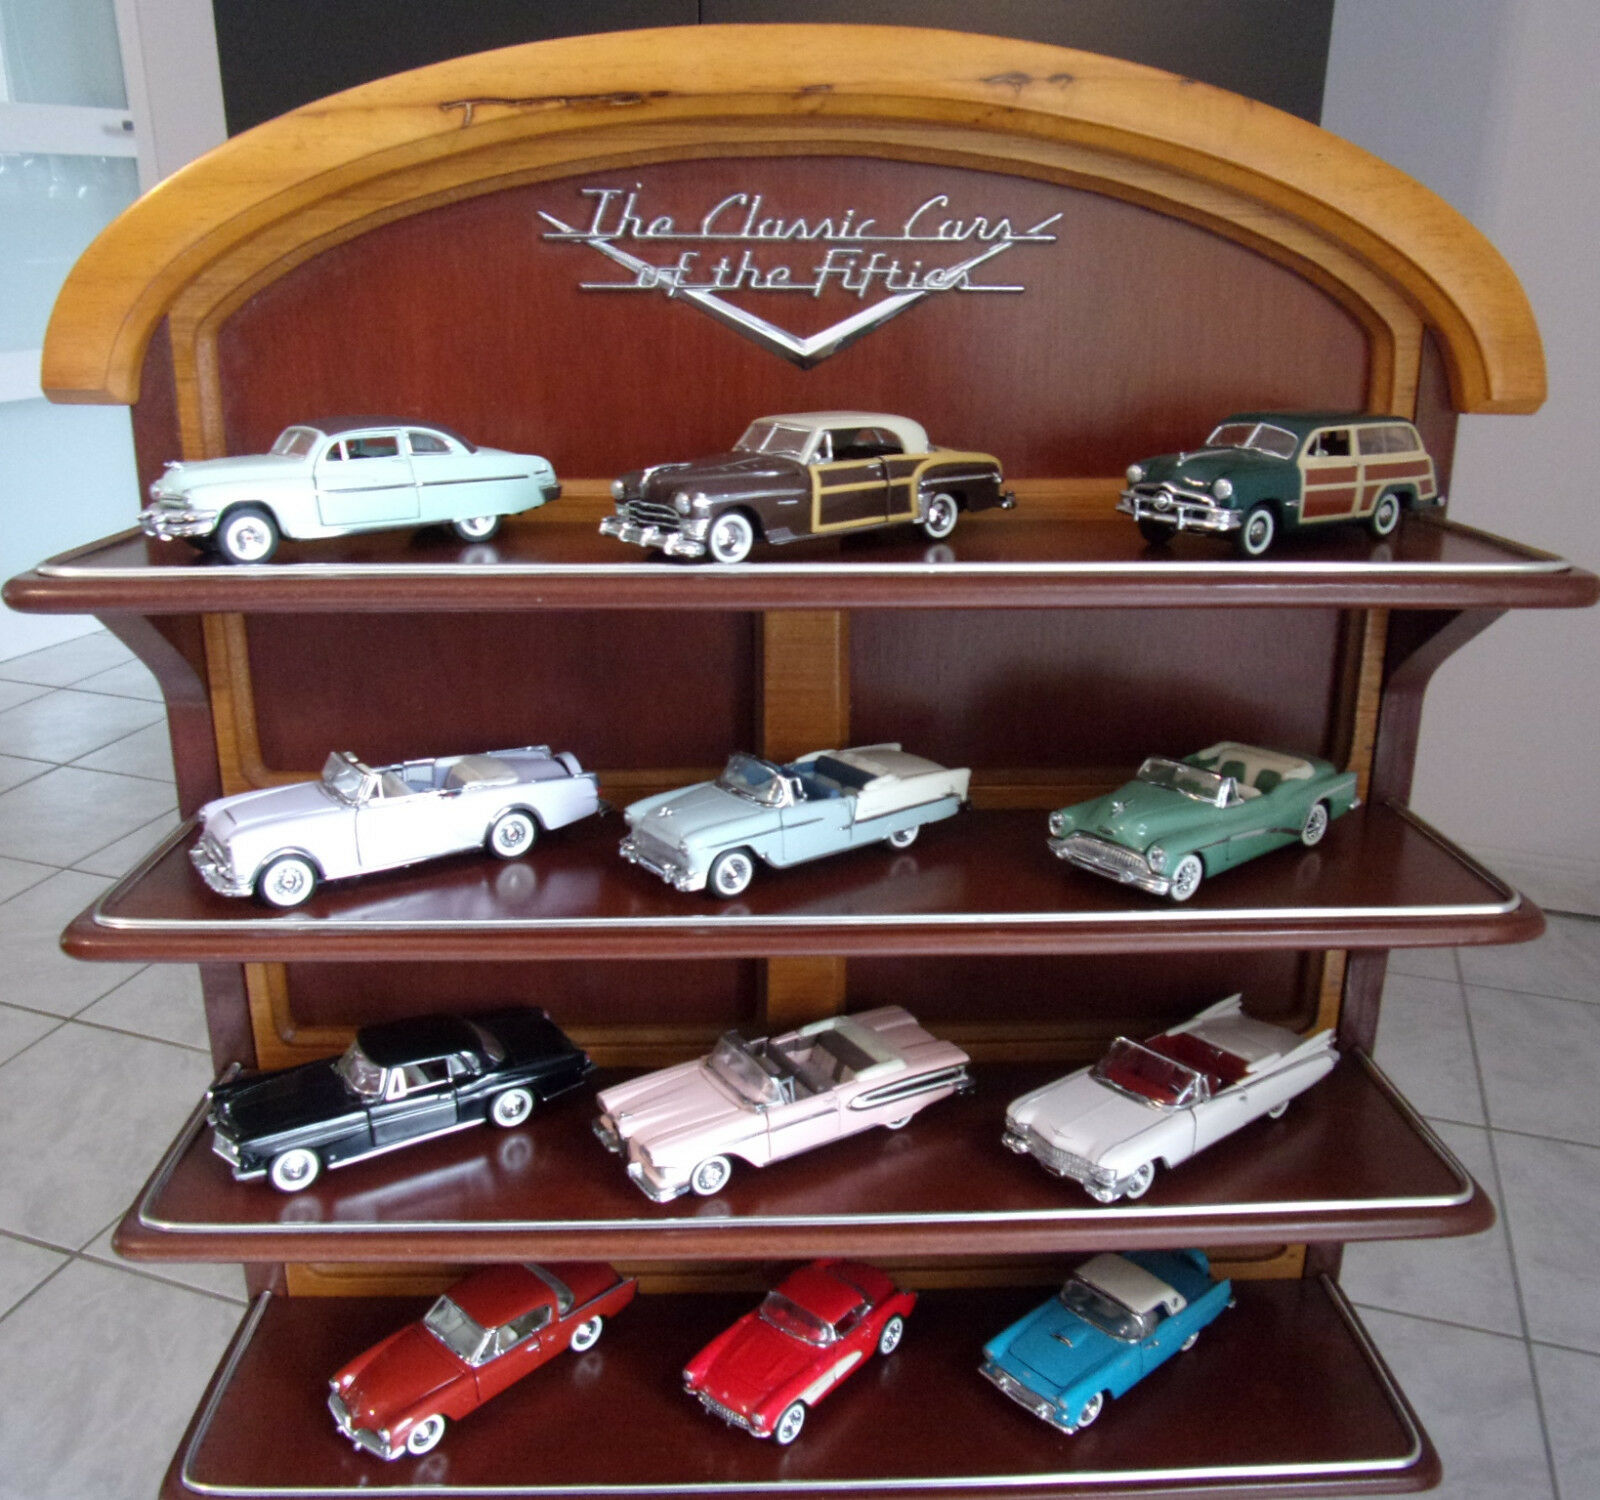 Lot of 12 Franklin mint The classic American cars of the fifties